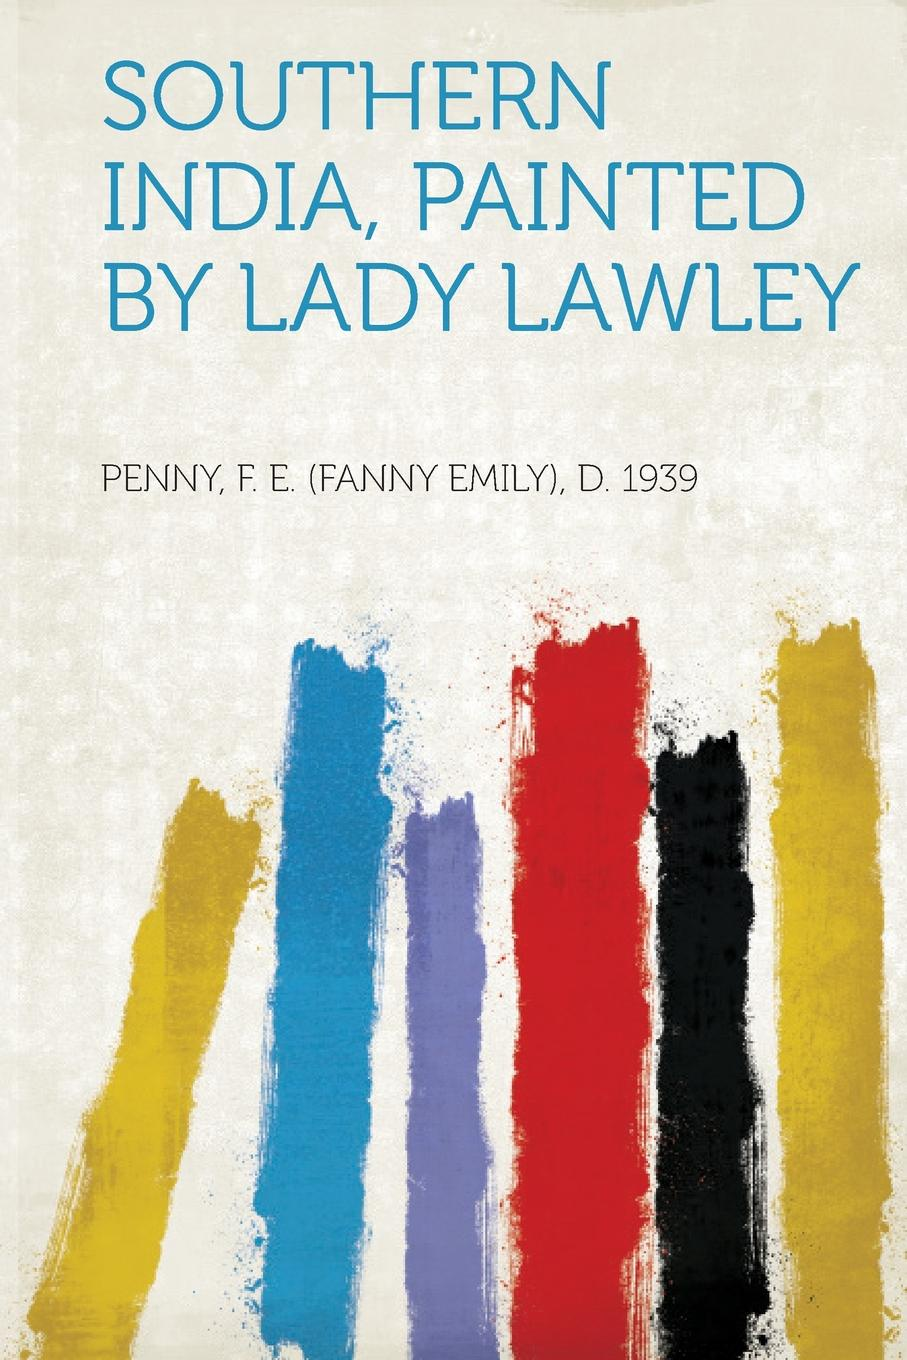 Southern India, Painted by Lady Lawley